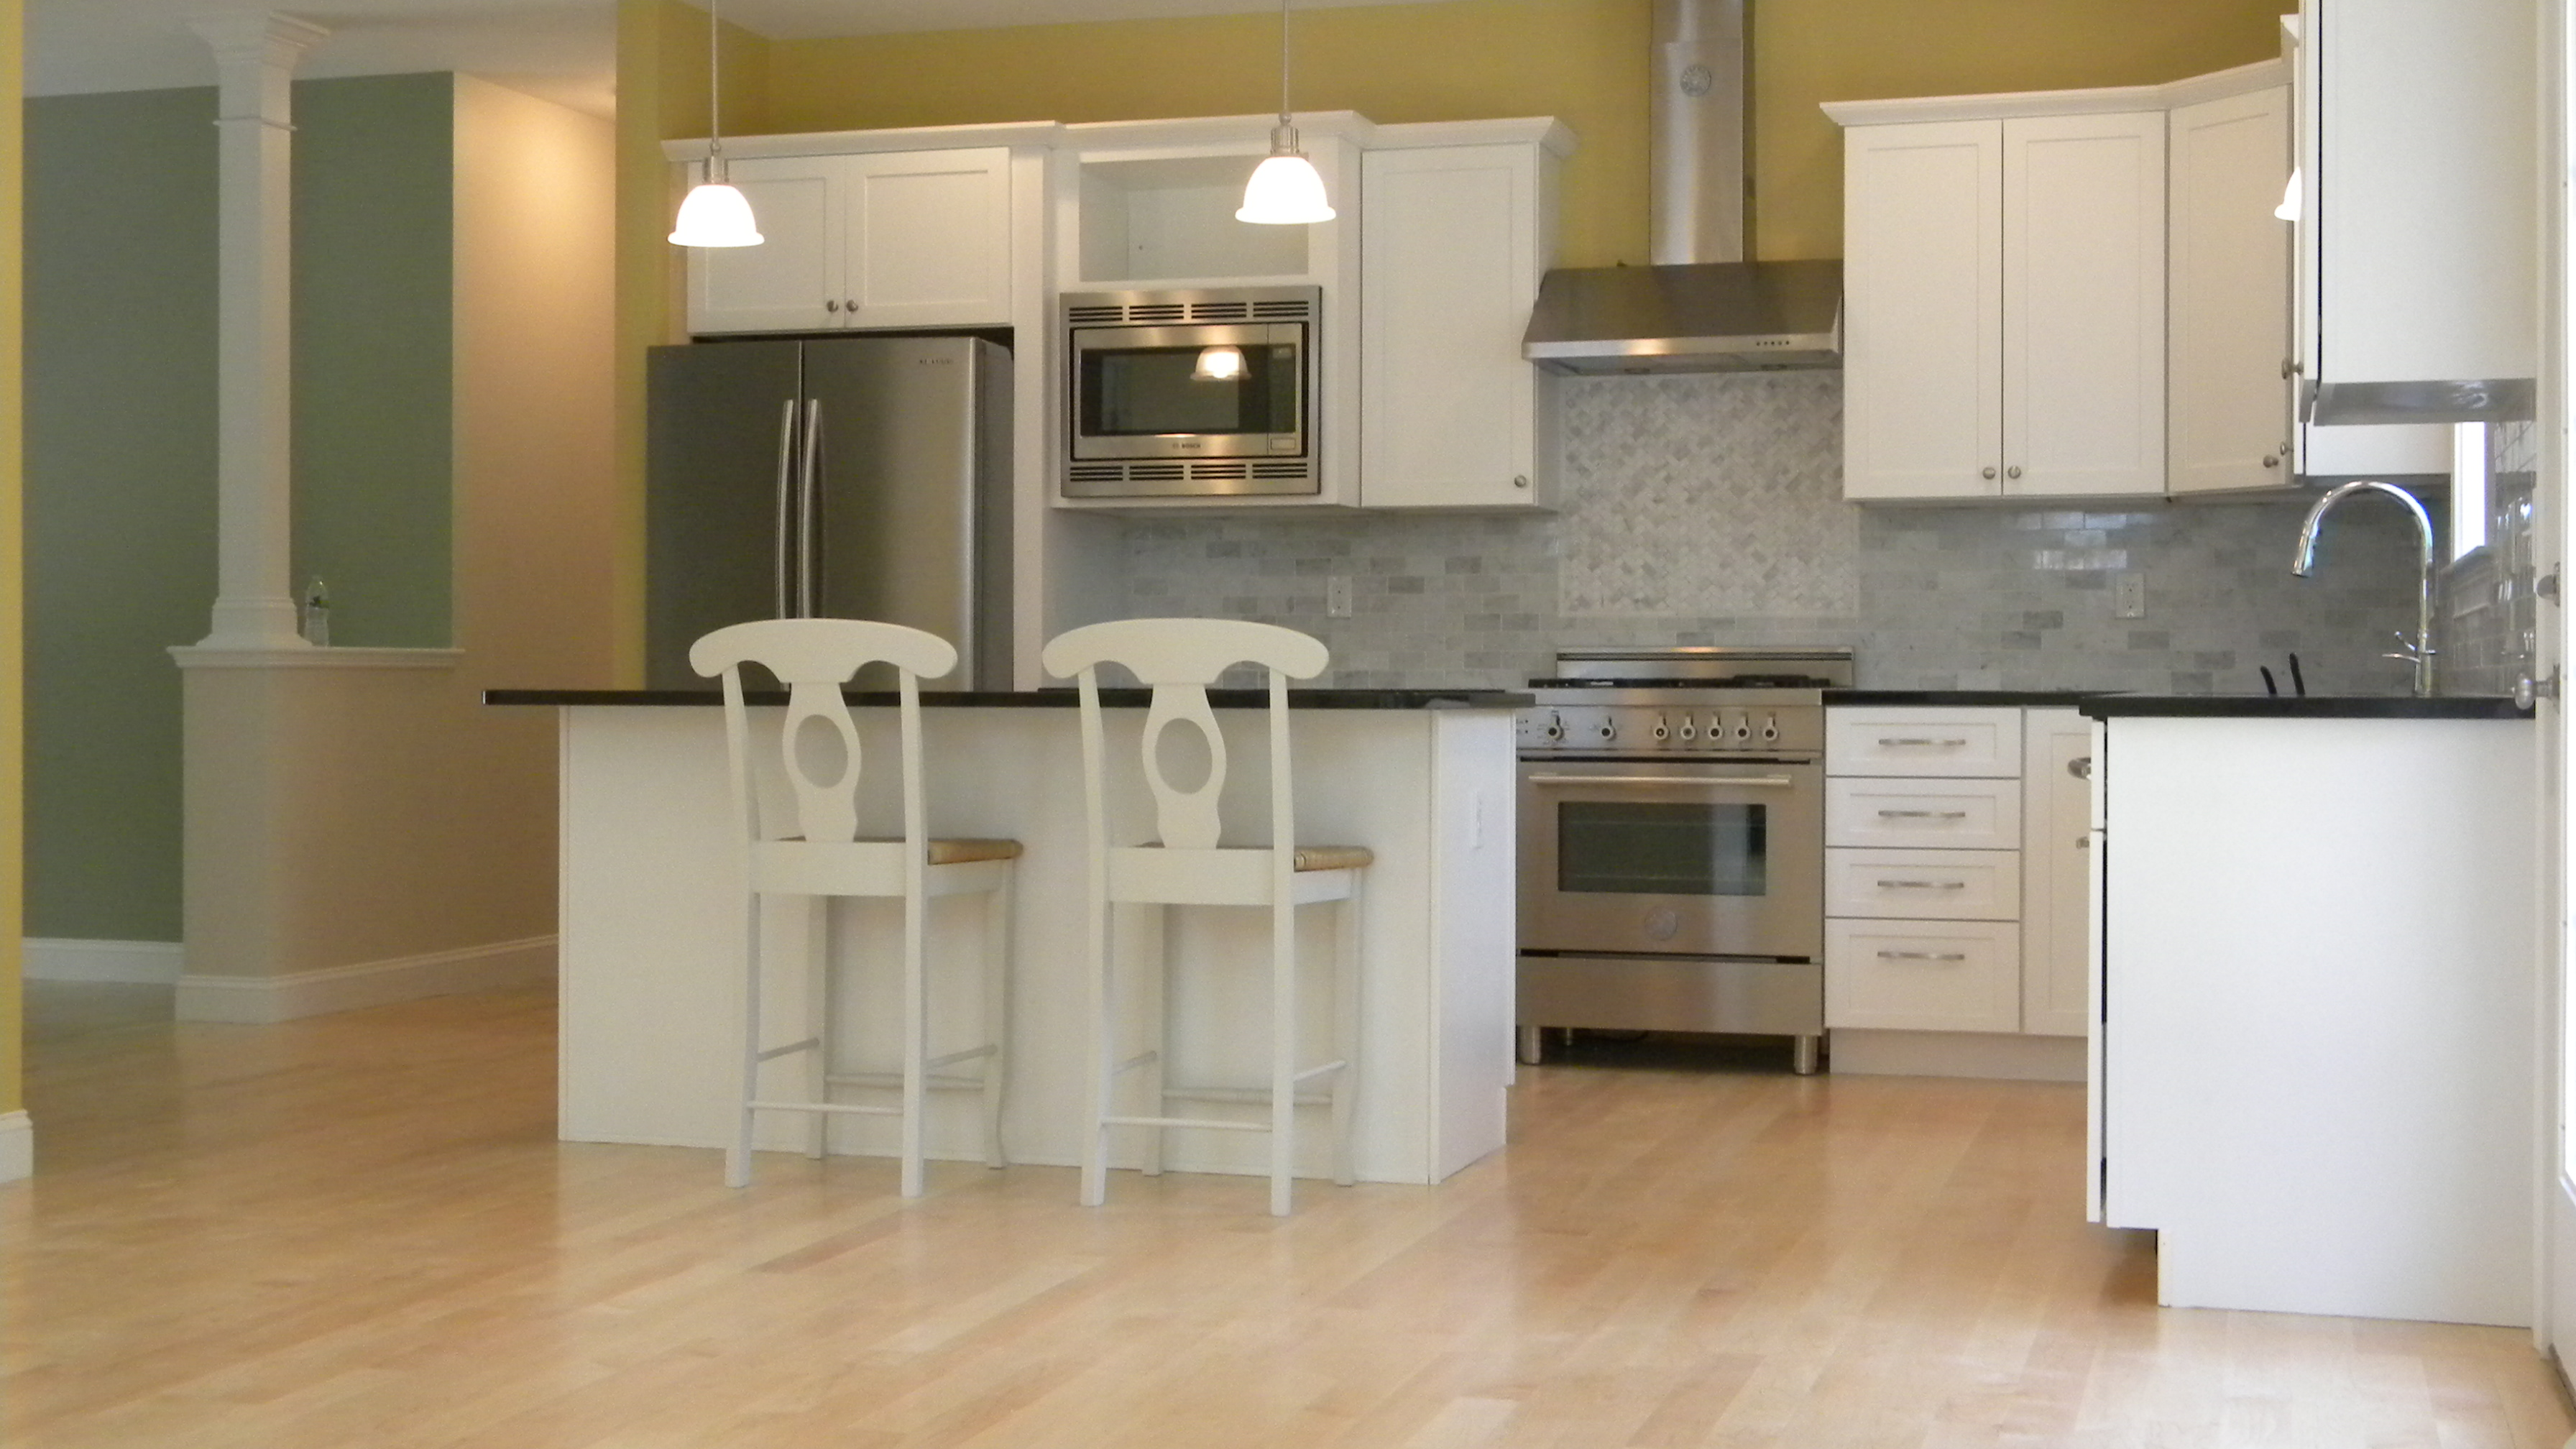 Kitchen Islands with Stove Top